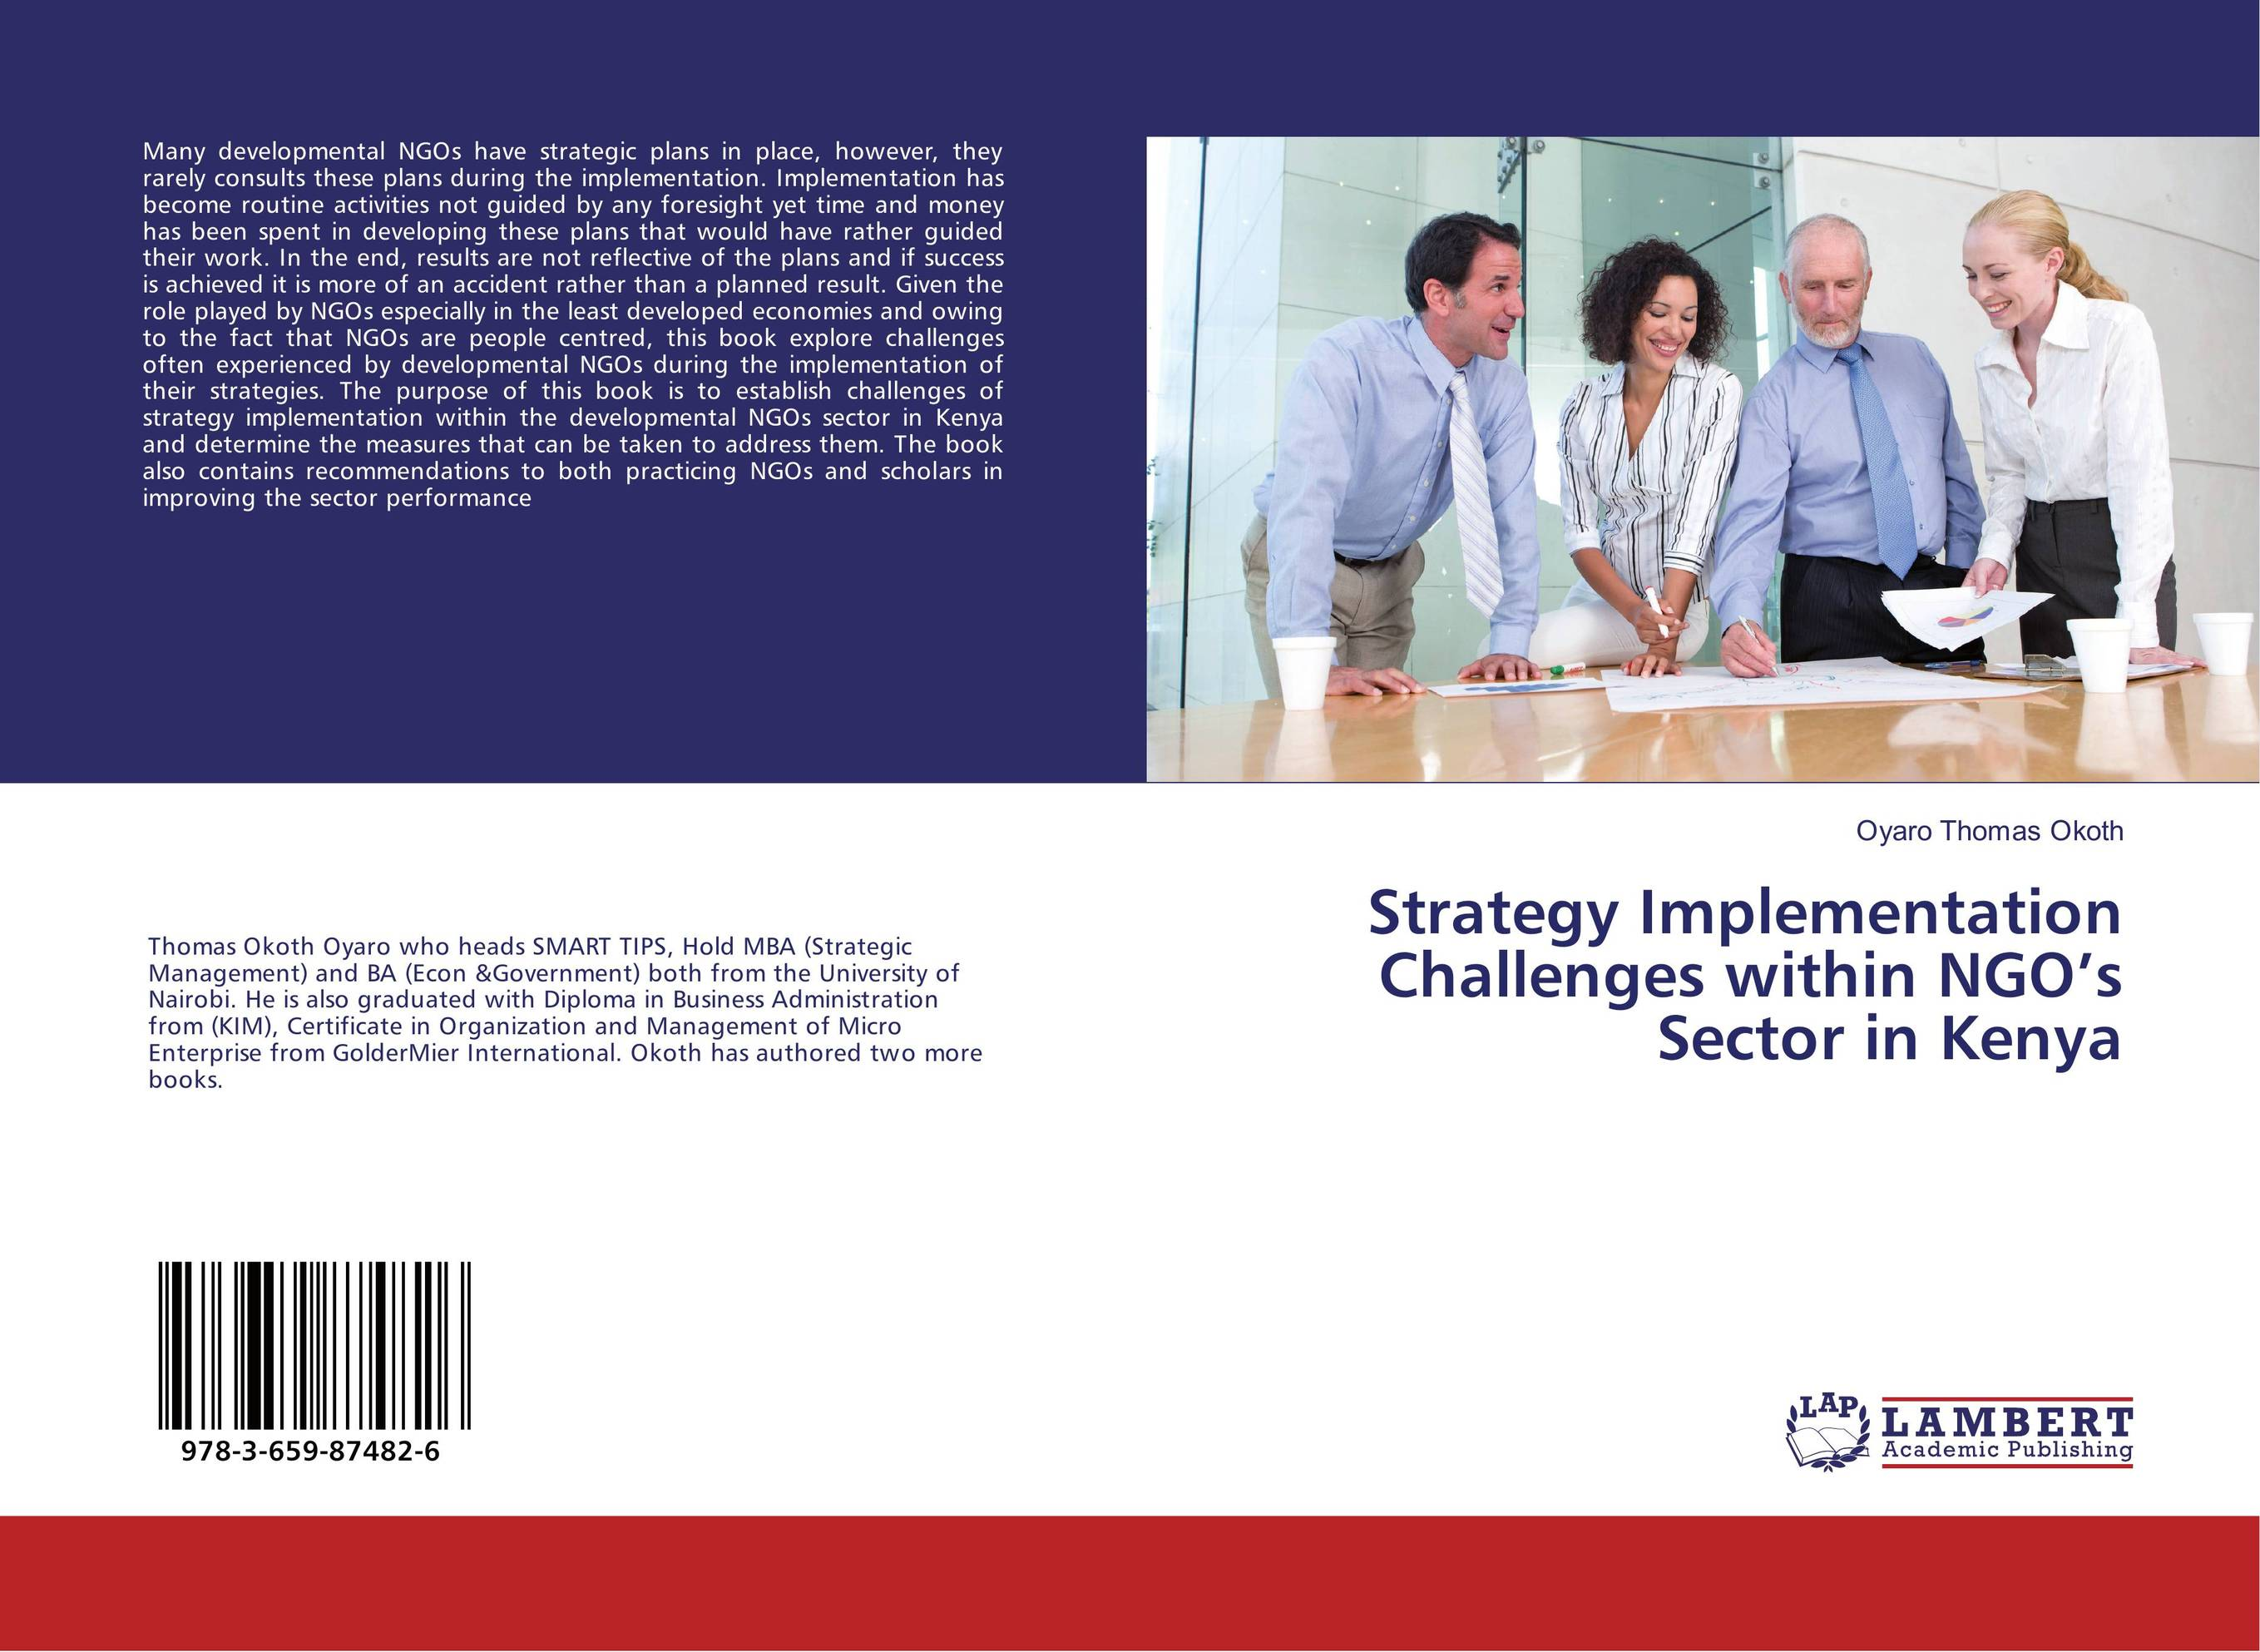 Strategy Implementation Challenges within NGO's Sector in Kenya ngos